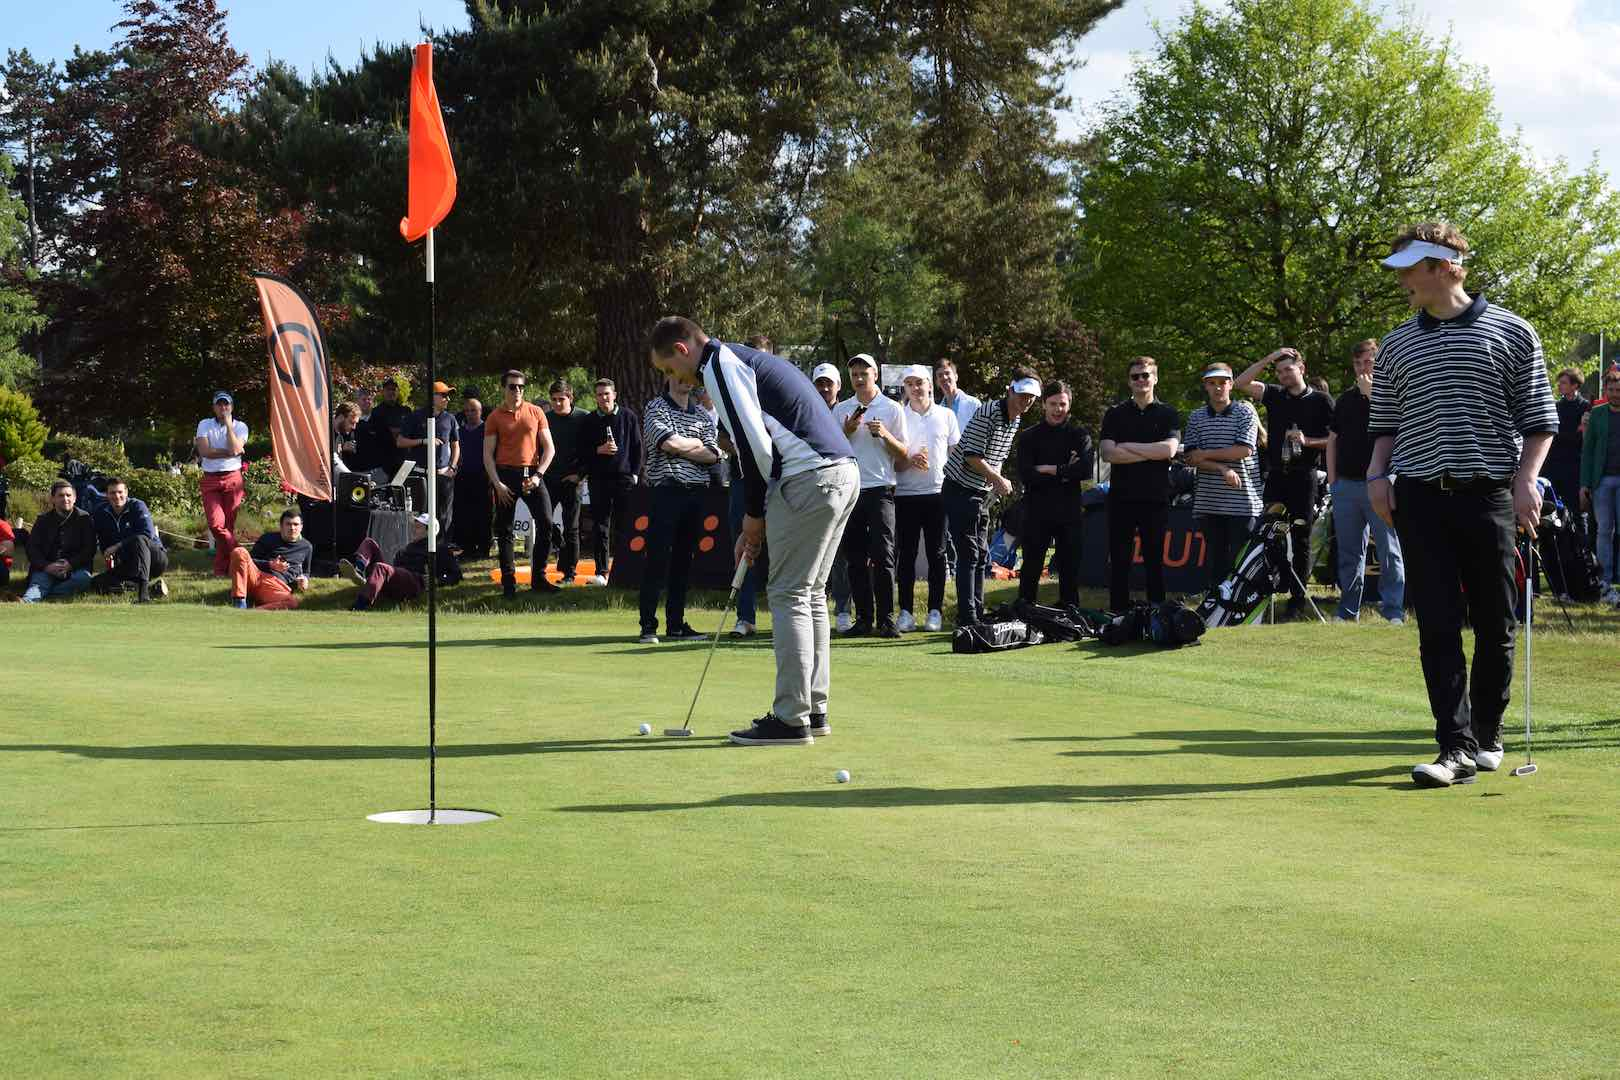 New 1PUTT golf formula to launch at Esher GC